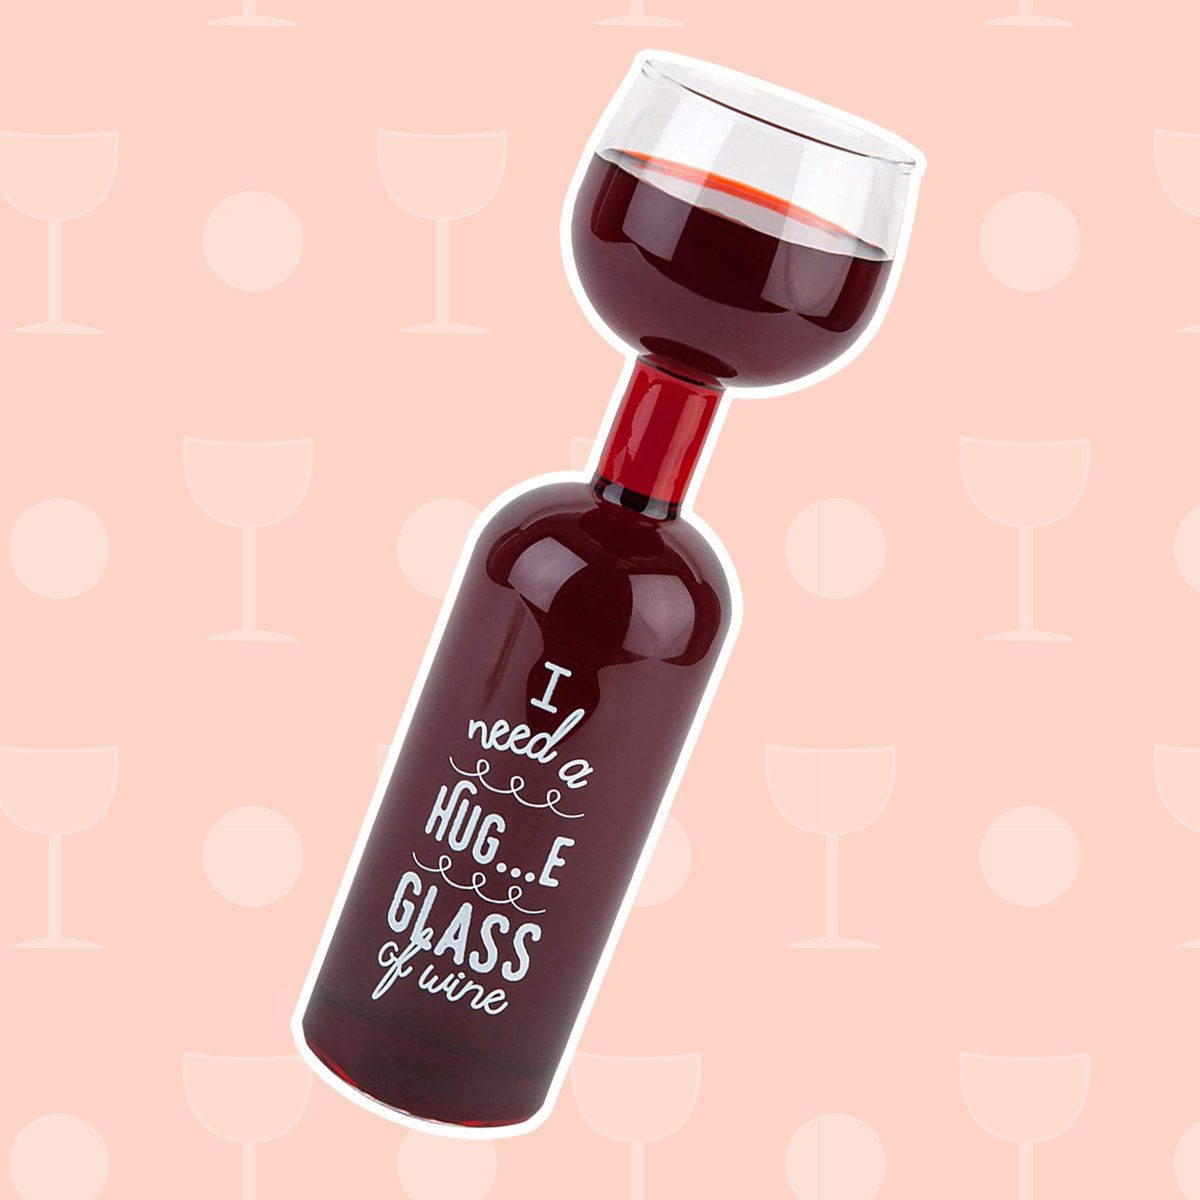 18 Gifts That Wine Lovers Will Appreciate | Taste of Home